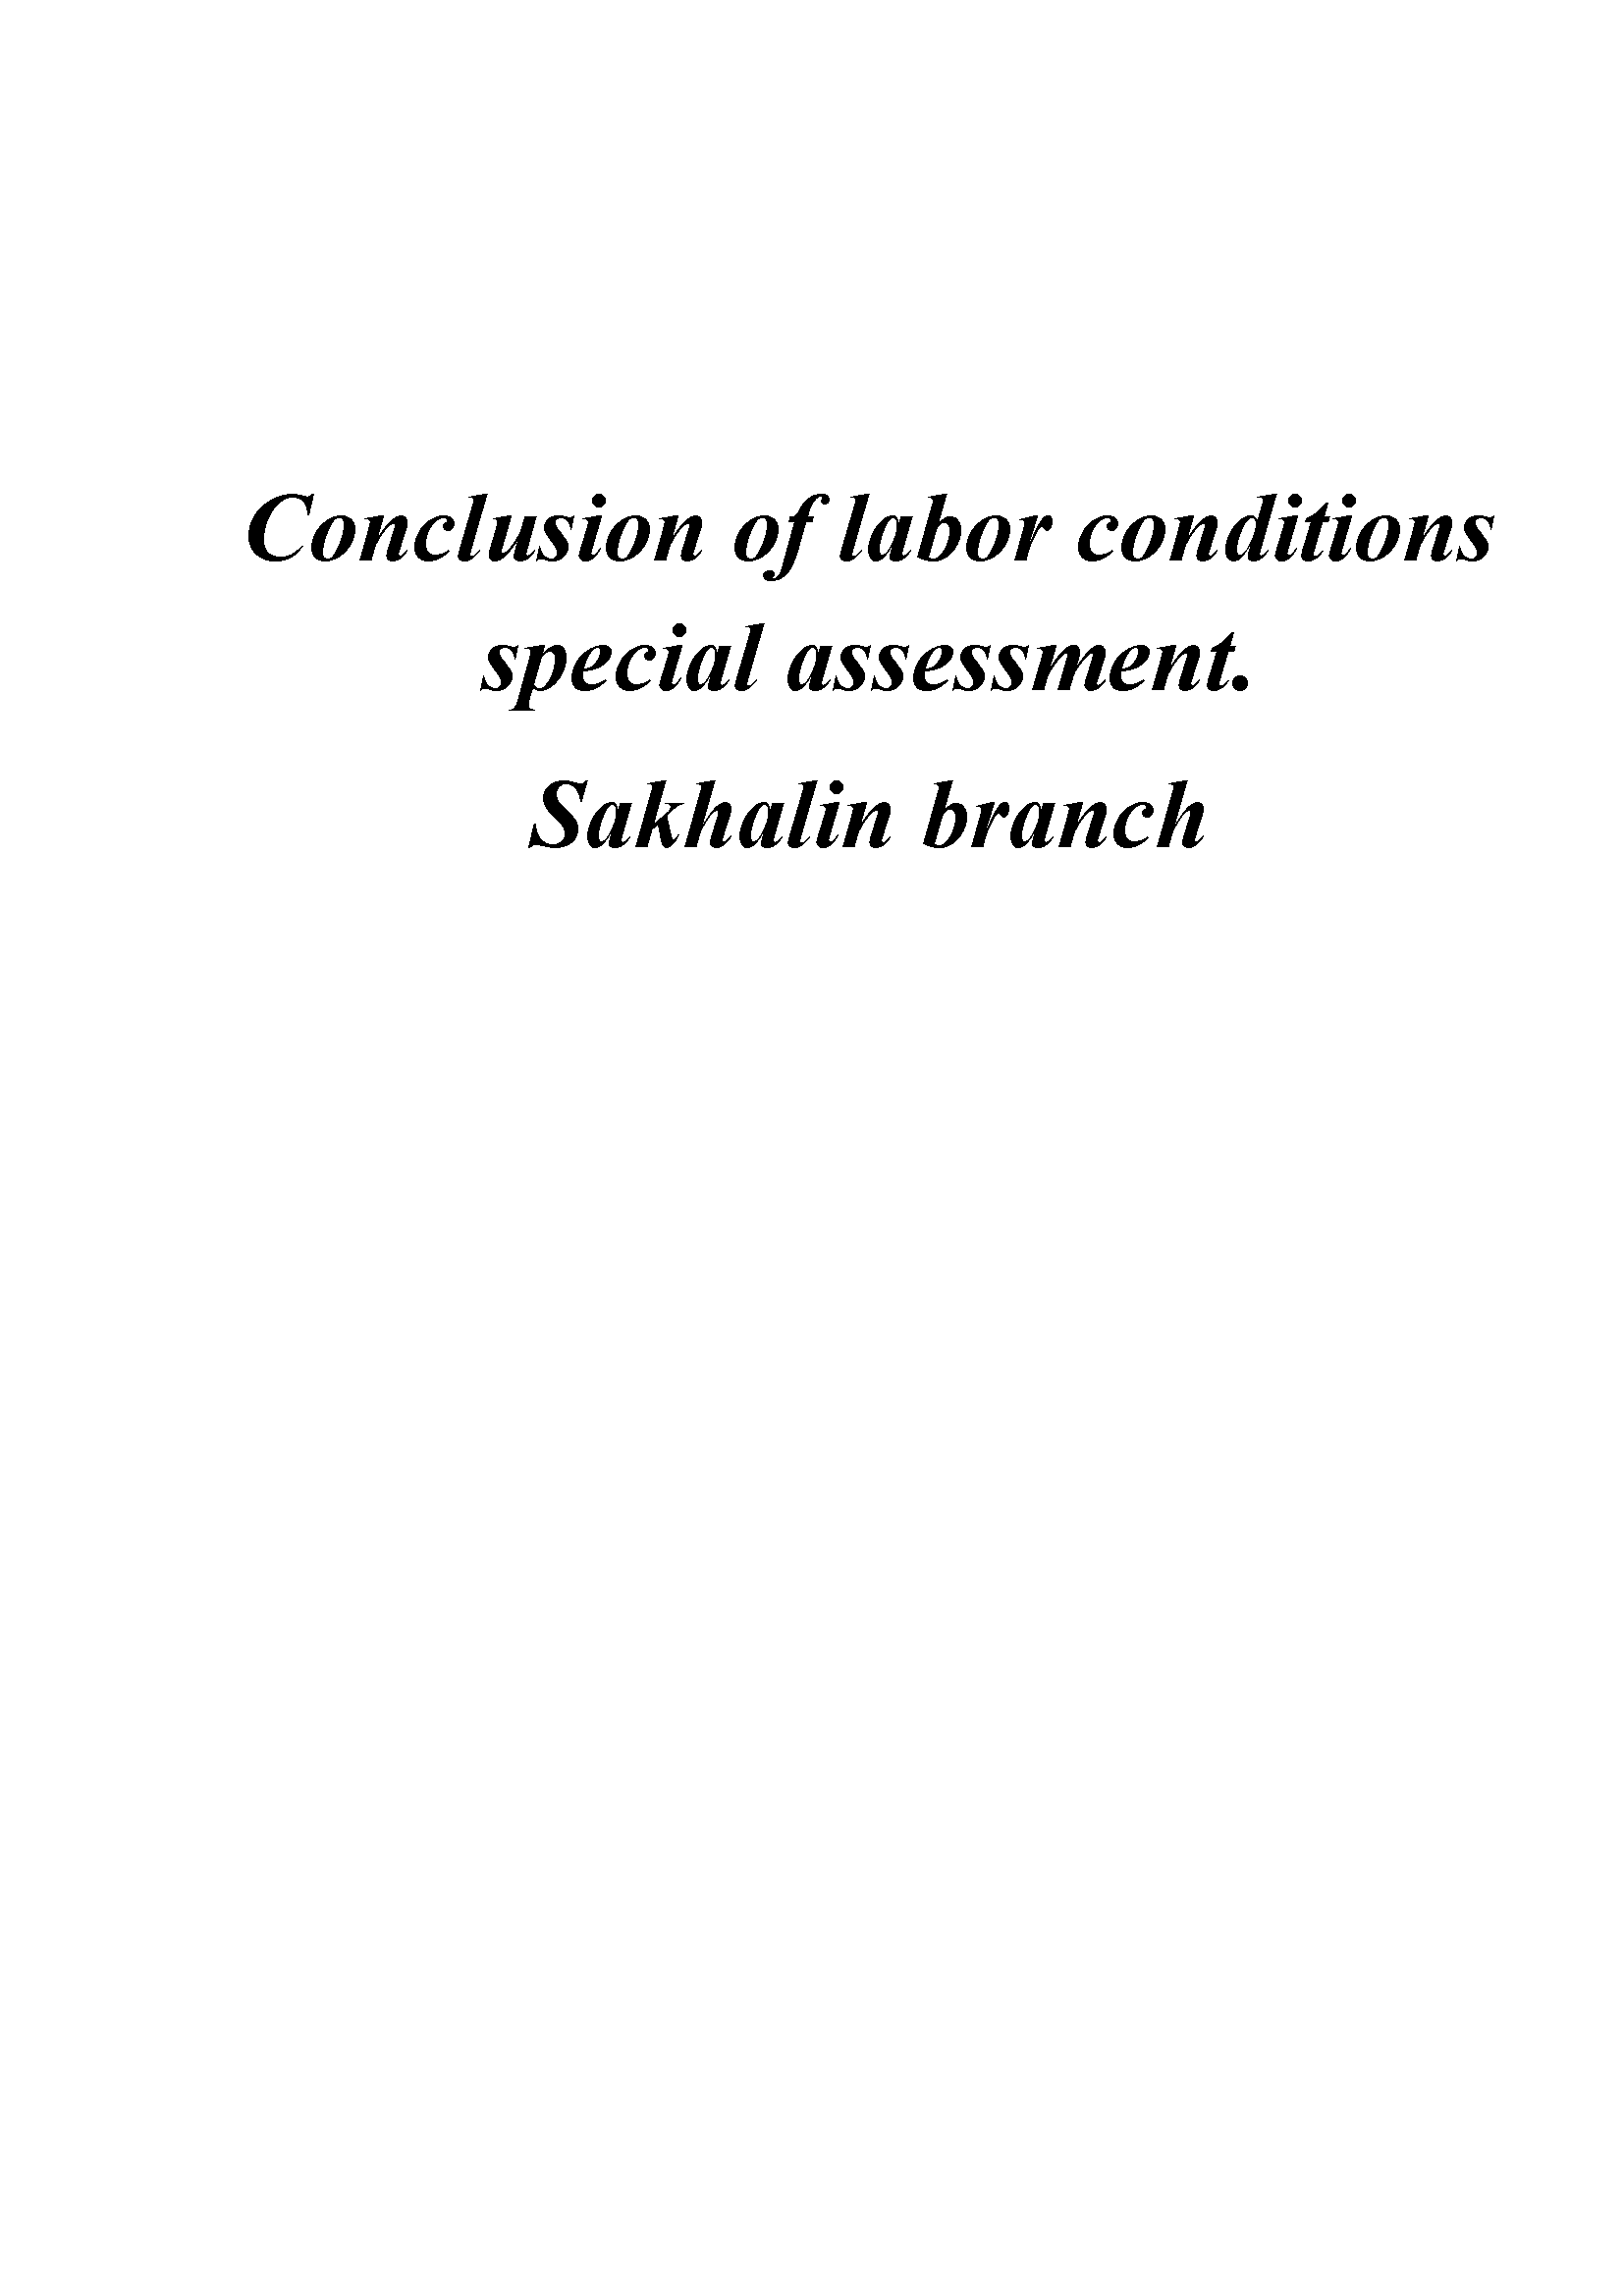 Conclusion of labor conditions special assessment. Sakhalin